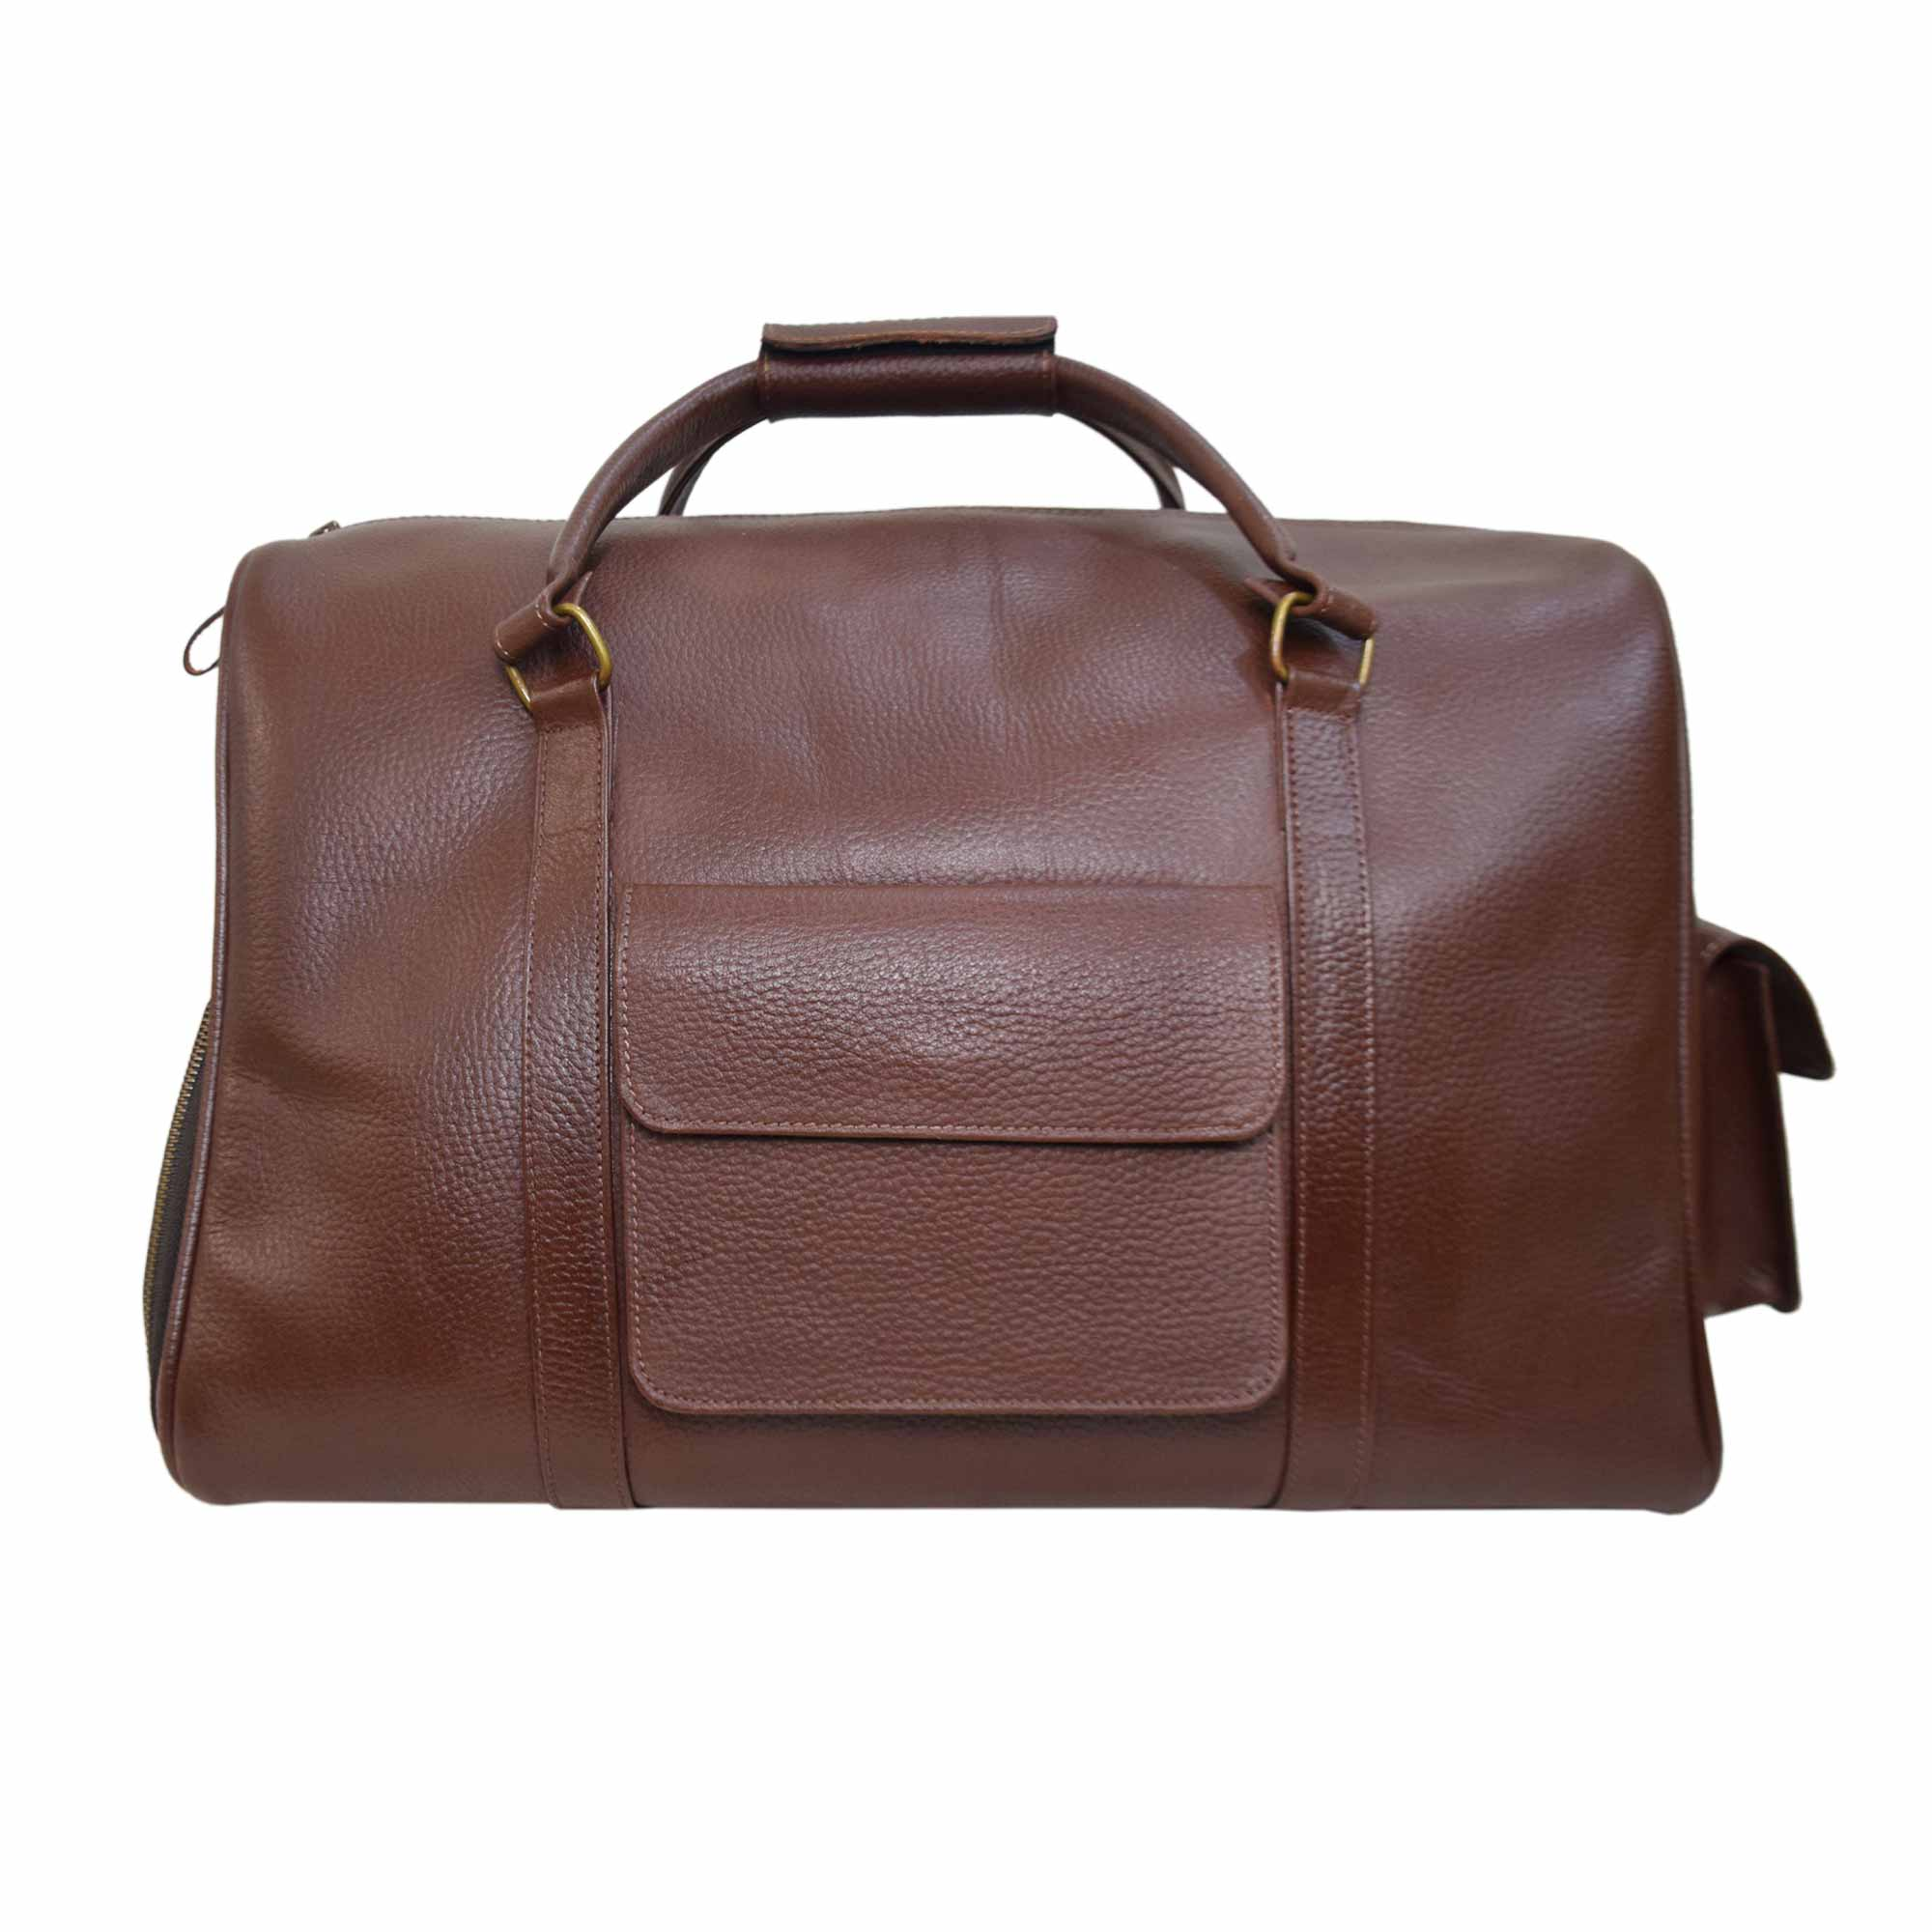 BROWN WEEKEND BAG WITH LEATHER GRAIN